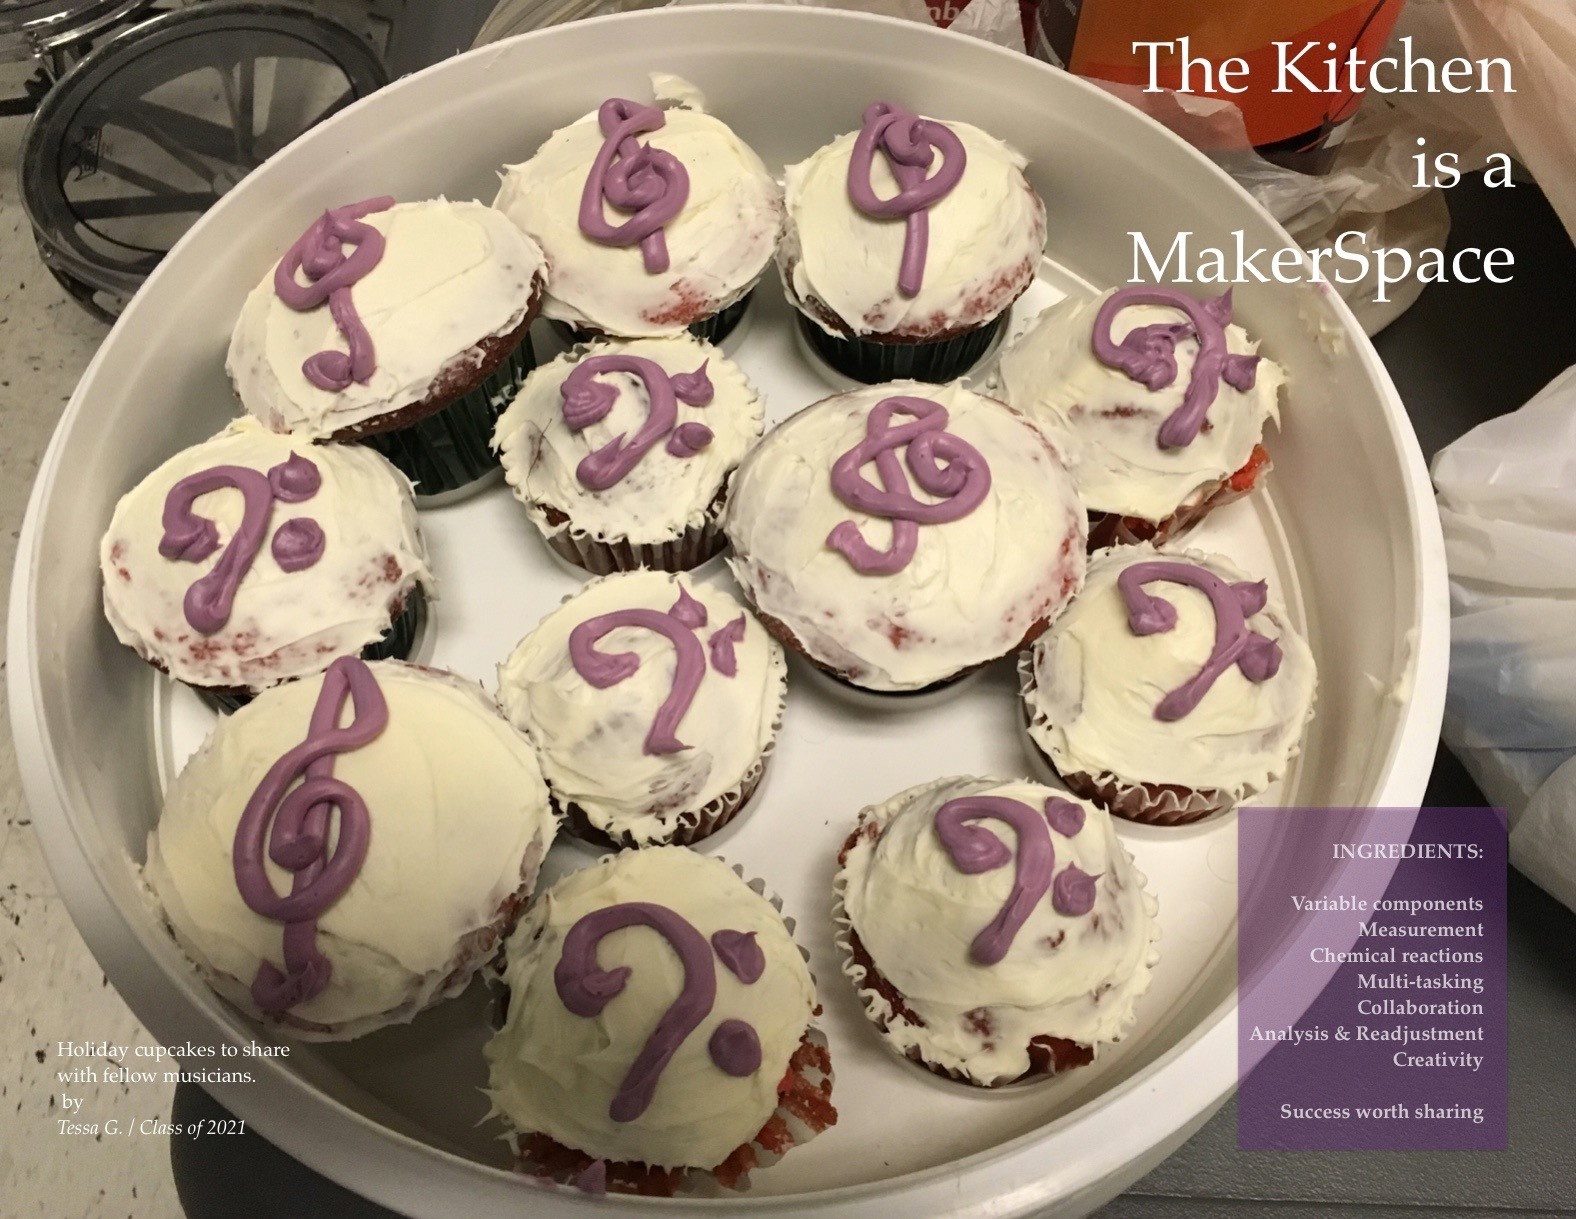 ACSLIB Poster: Cupcakes decorated with music composition symbols.